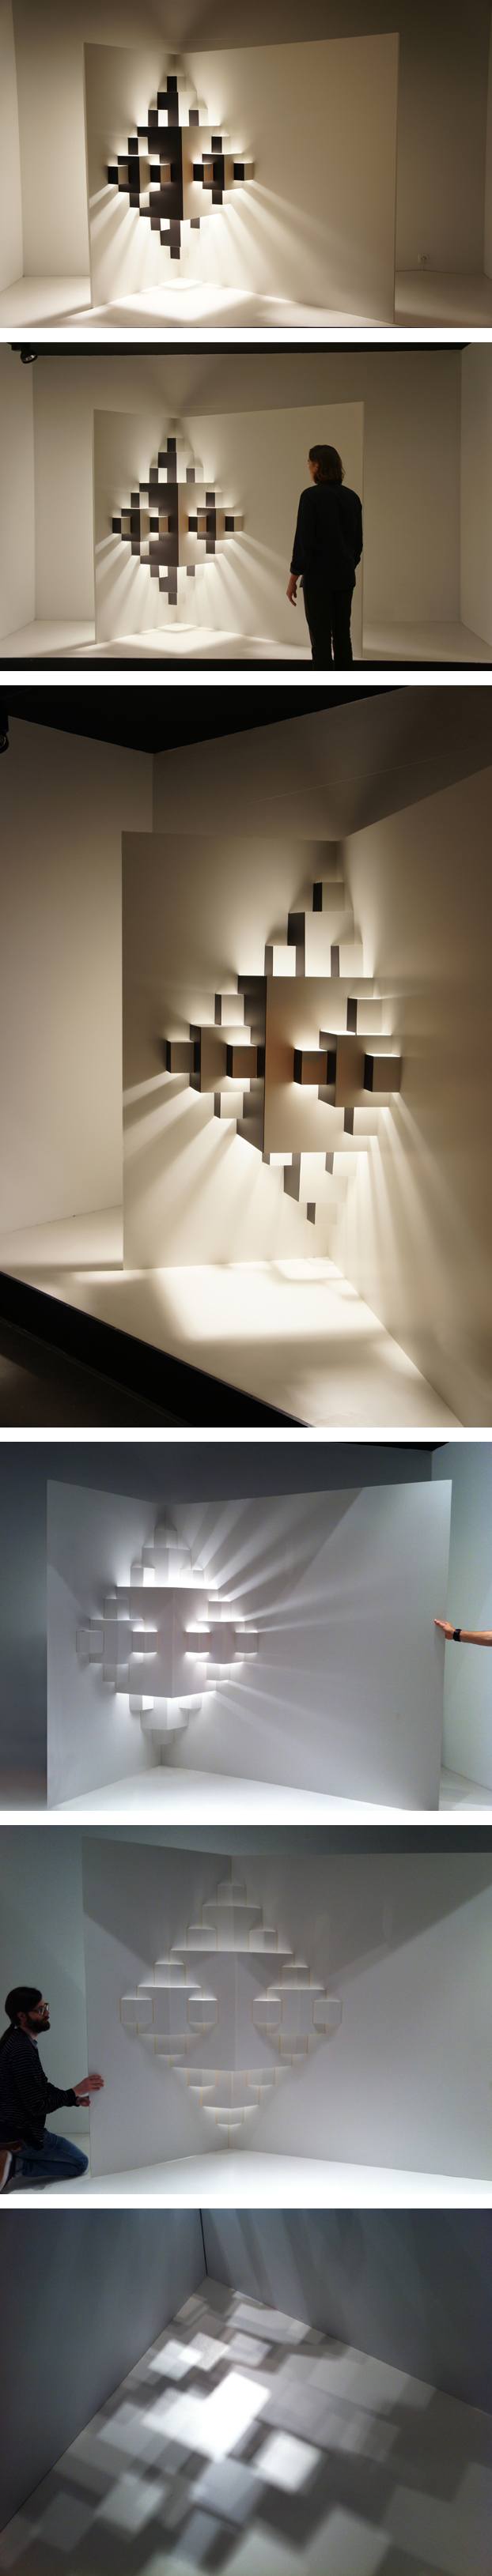 Pixel / Well Well Designers  Window display light installation – paper Dimensions 2,5 x 3